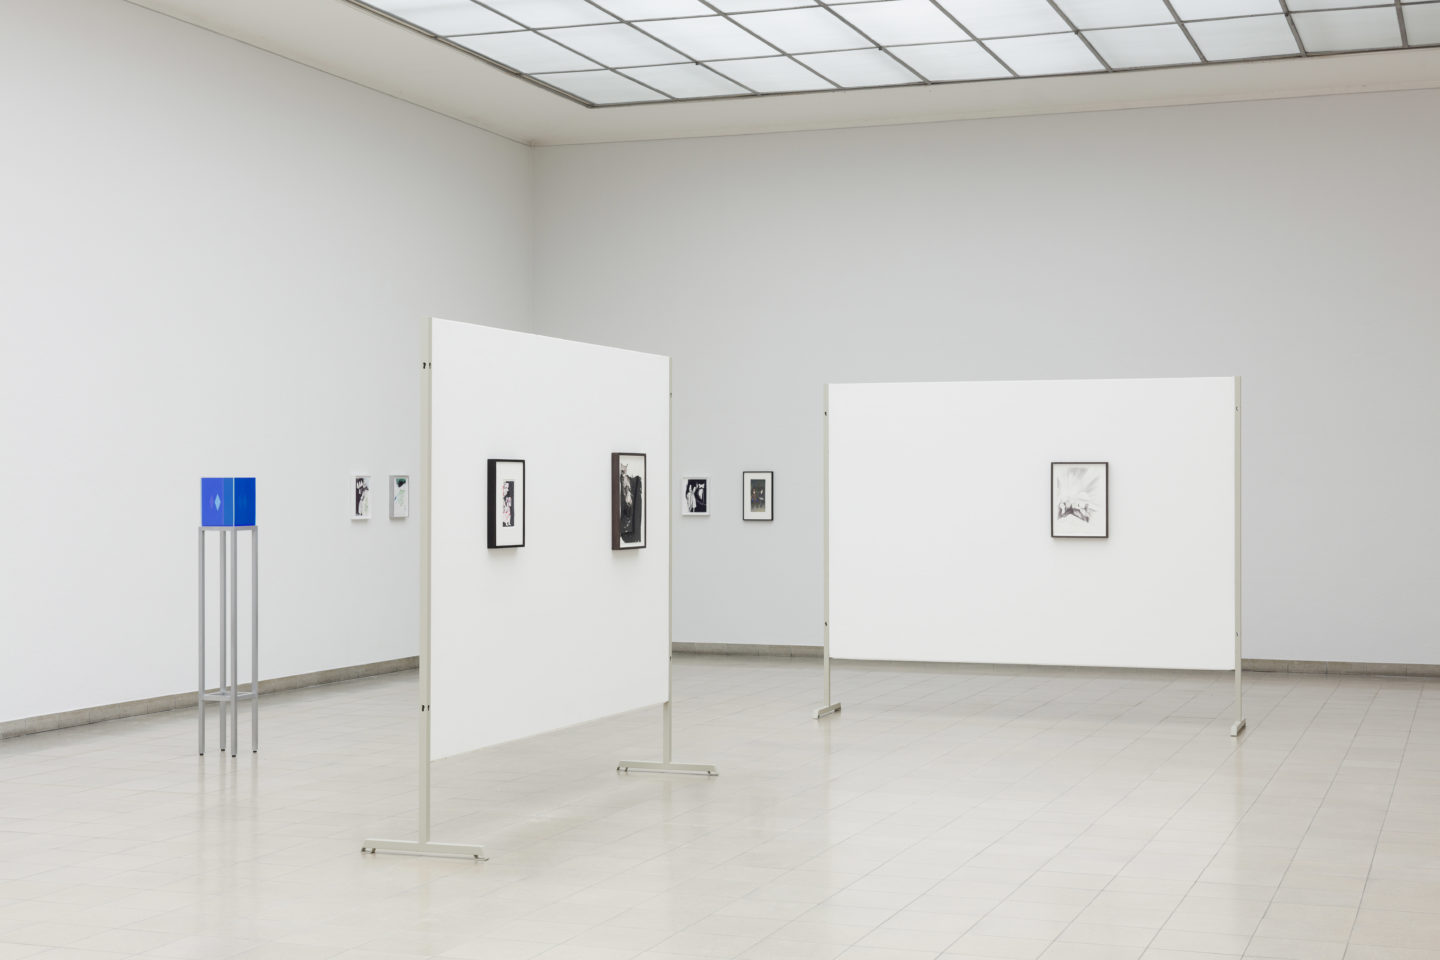 Exhibition View Bonnie Camplin «EPIC TIME» at Kunsthaus Glarus / Photo: Gunnar Meier / Courtesy: the artist and Kunsthaus Glarus